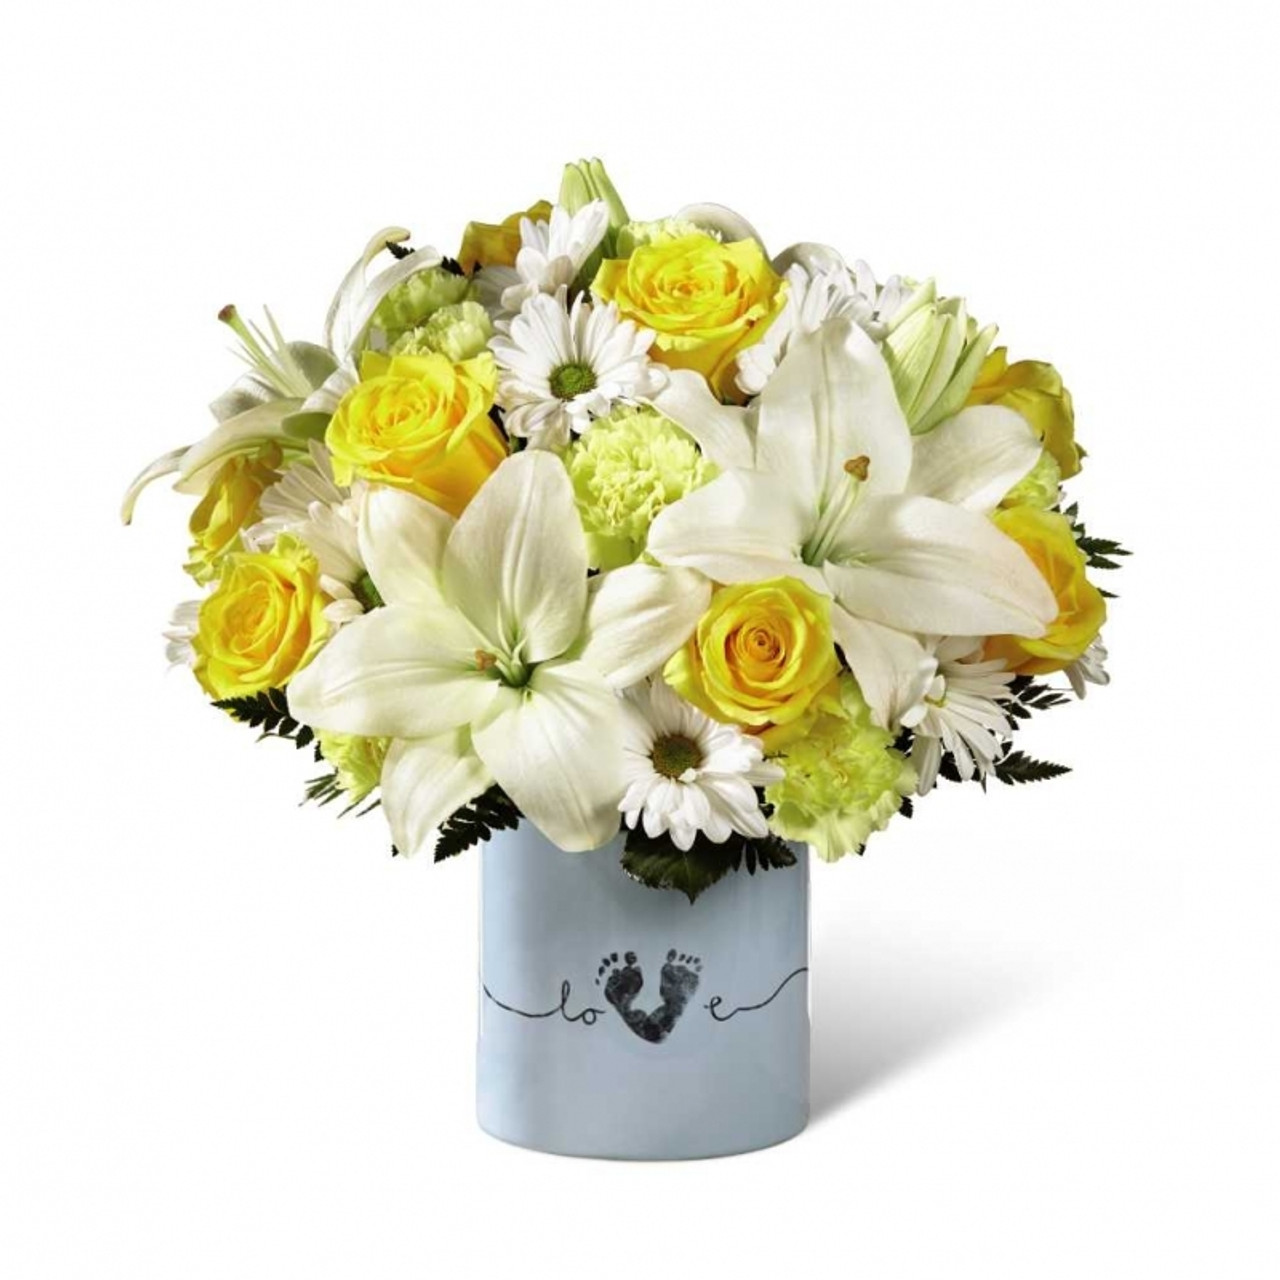 Tiny Miracle New Baby Boy Bouquet Kloeckner Preferred Flowers